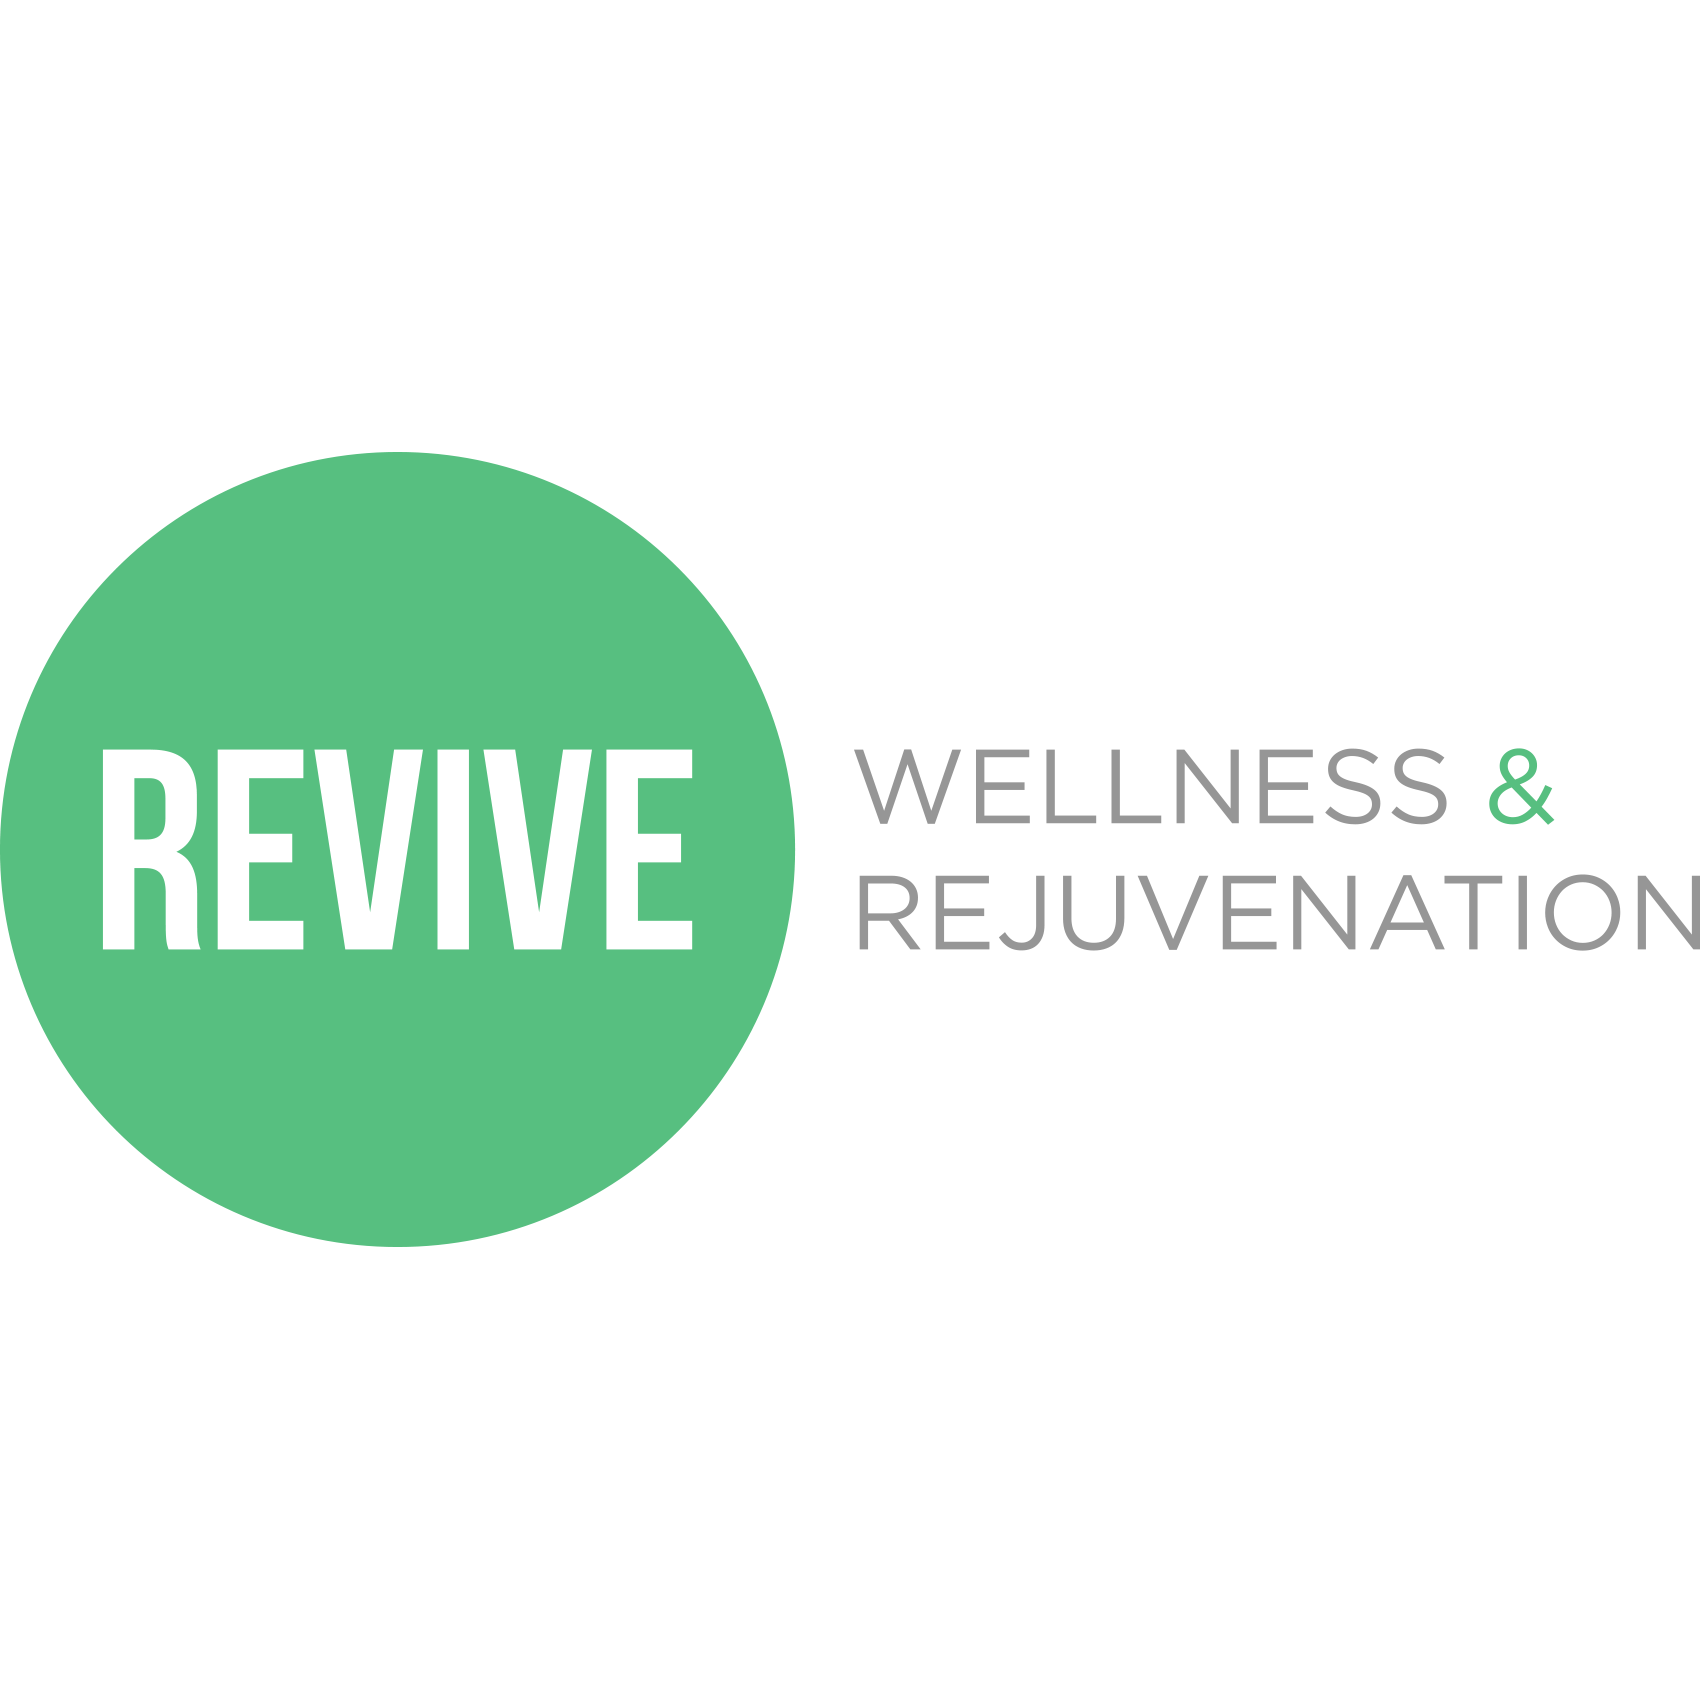 Revive Wellness & Rejuvenation